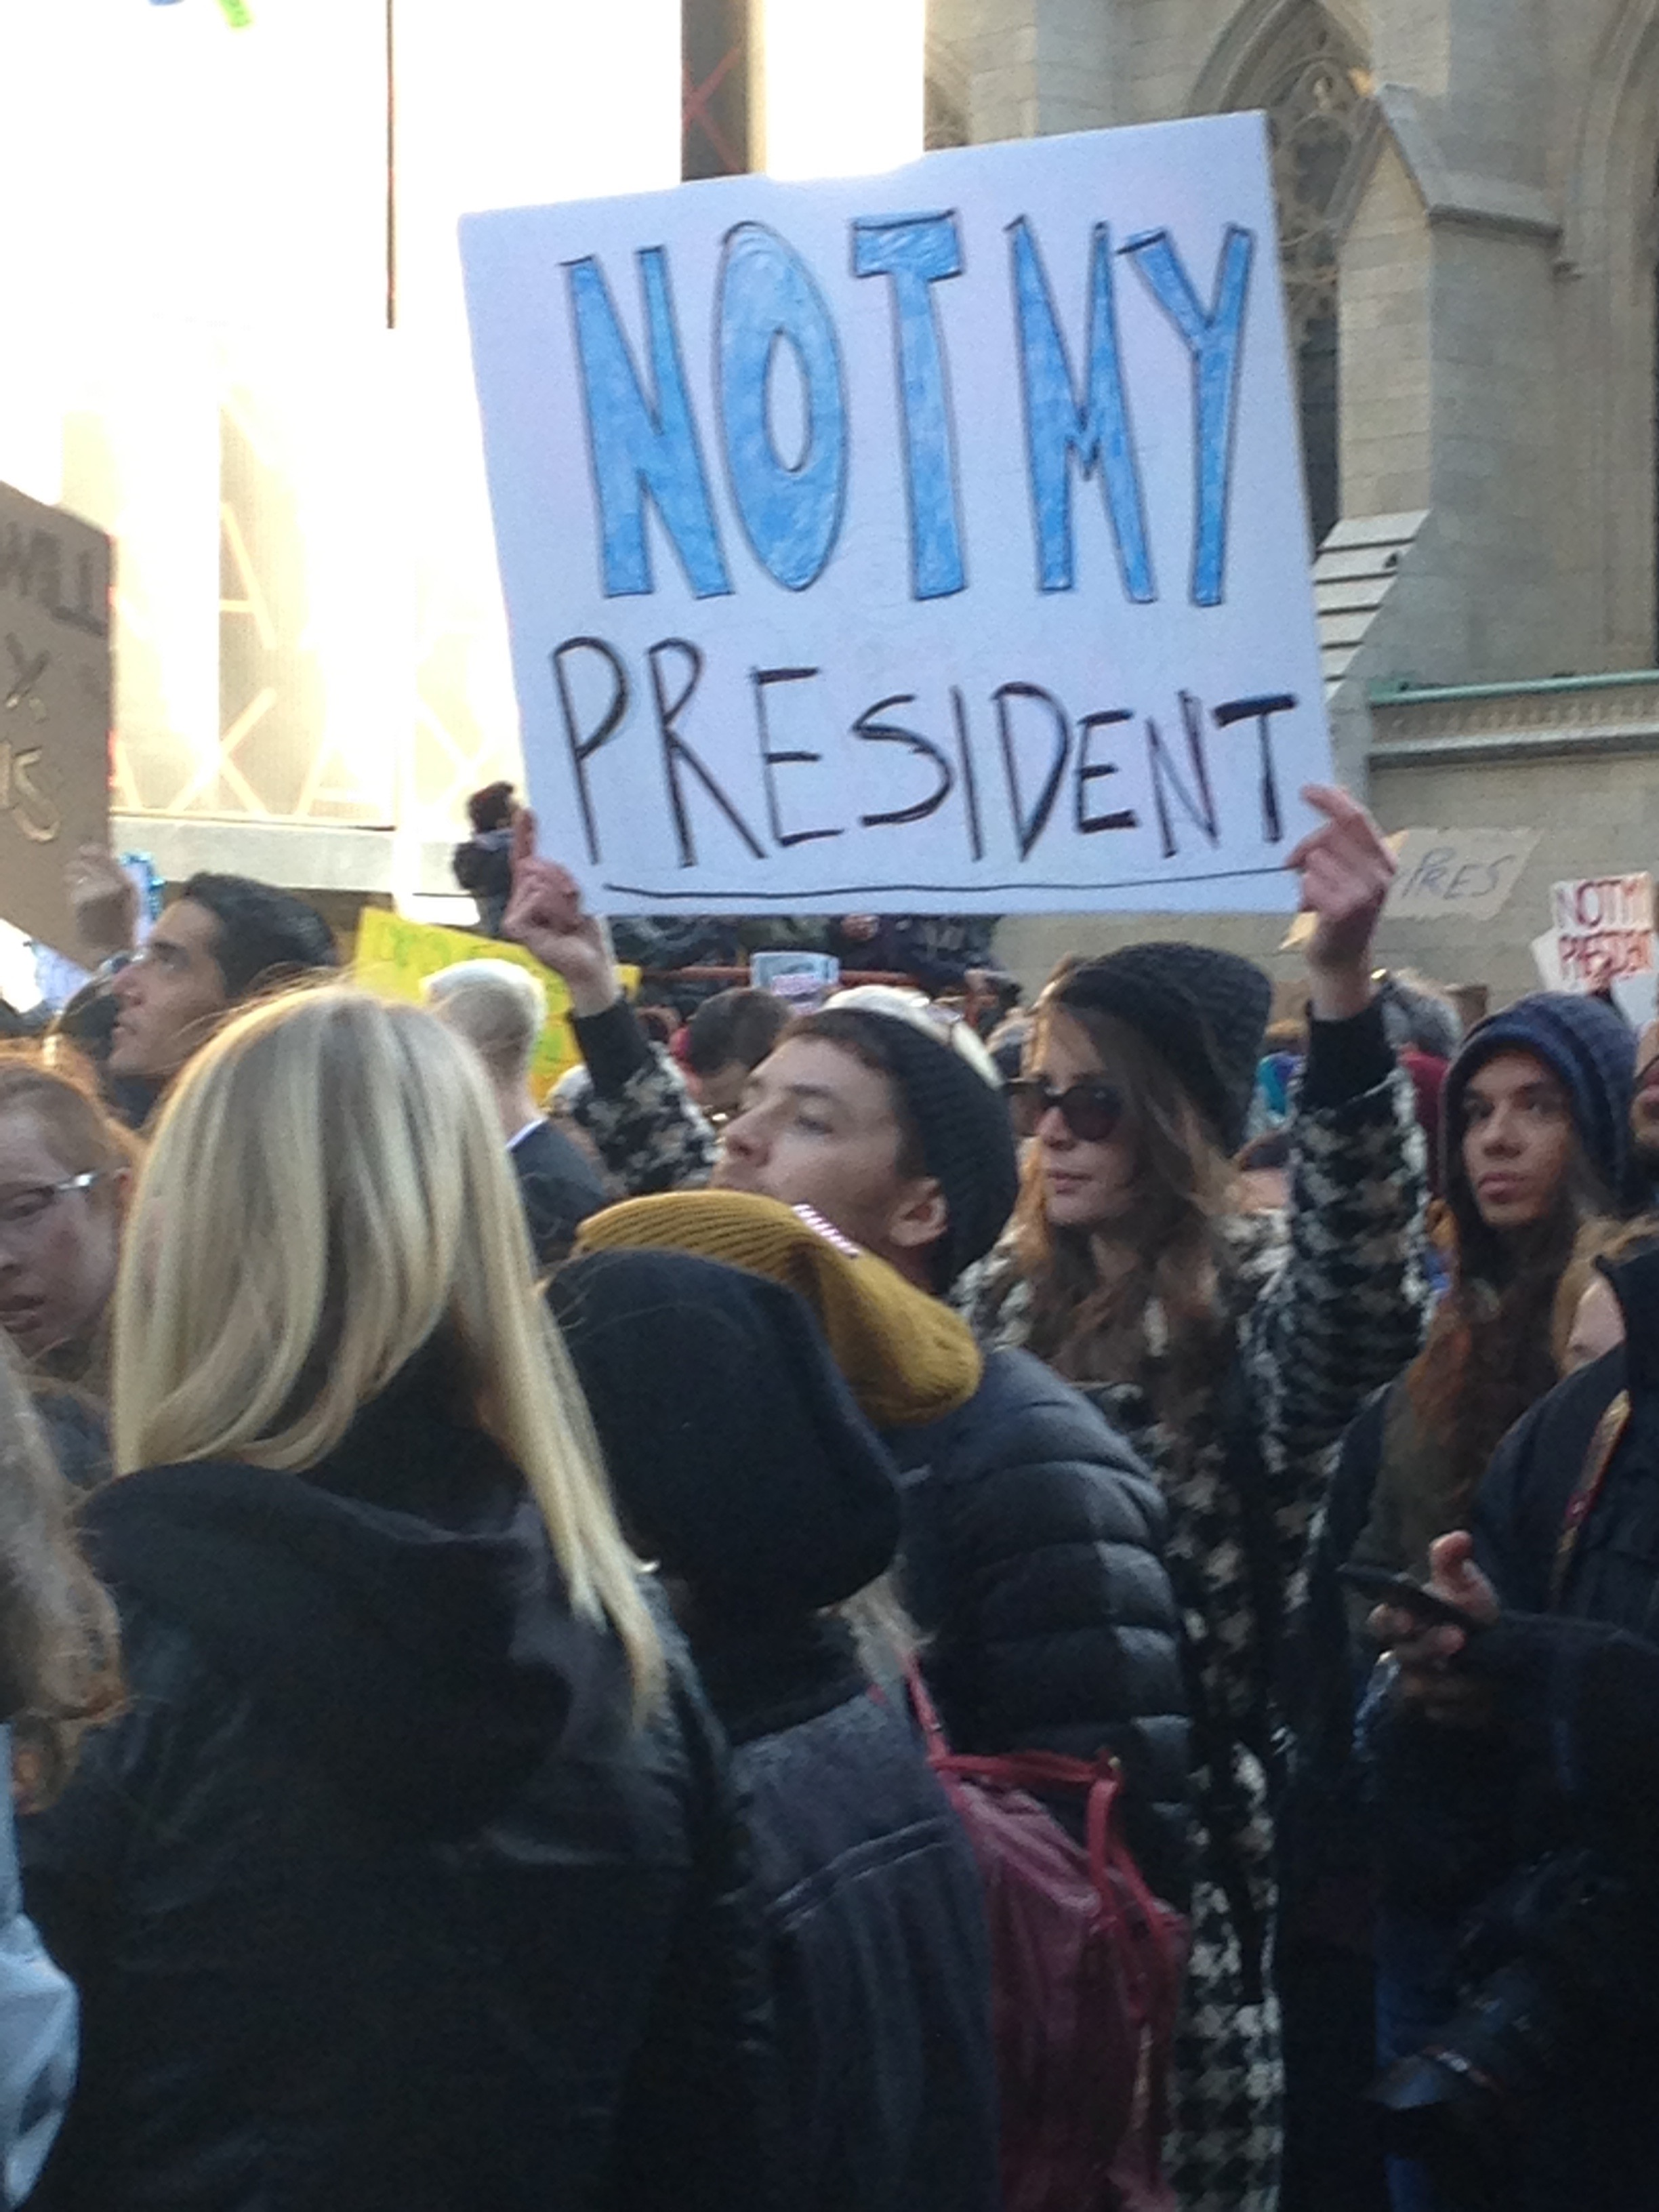 manifestation_anti-trump-new-york-25